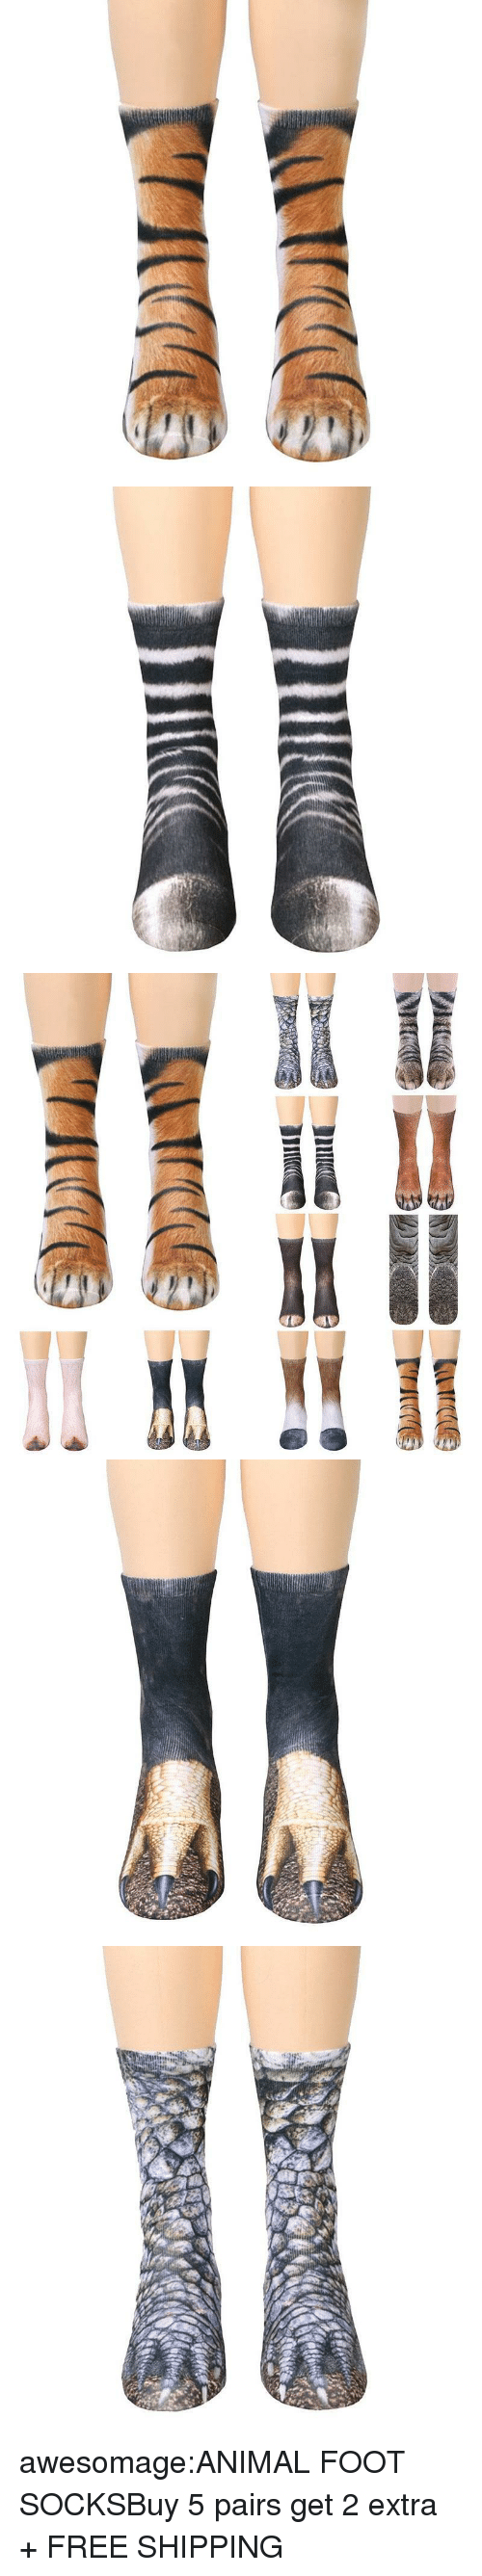 Animals, Children, and Cute: awesomage:ANIMAL FOOT SOCKSBuy 5 pairs  get 2 extra + FREE SHIPPING